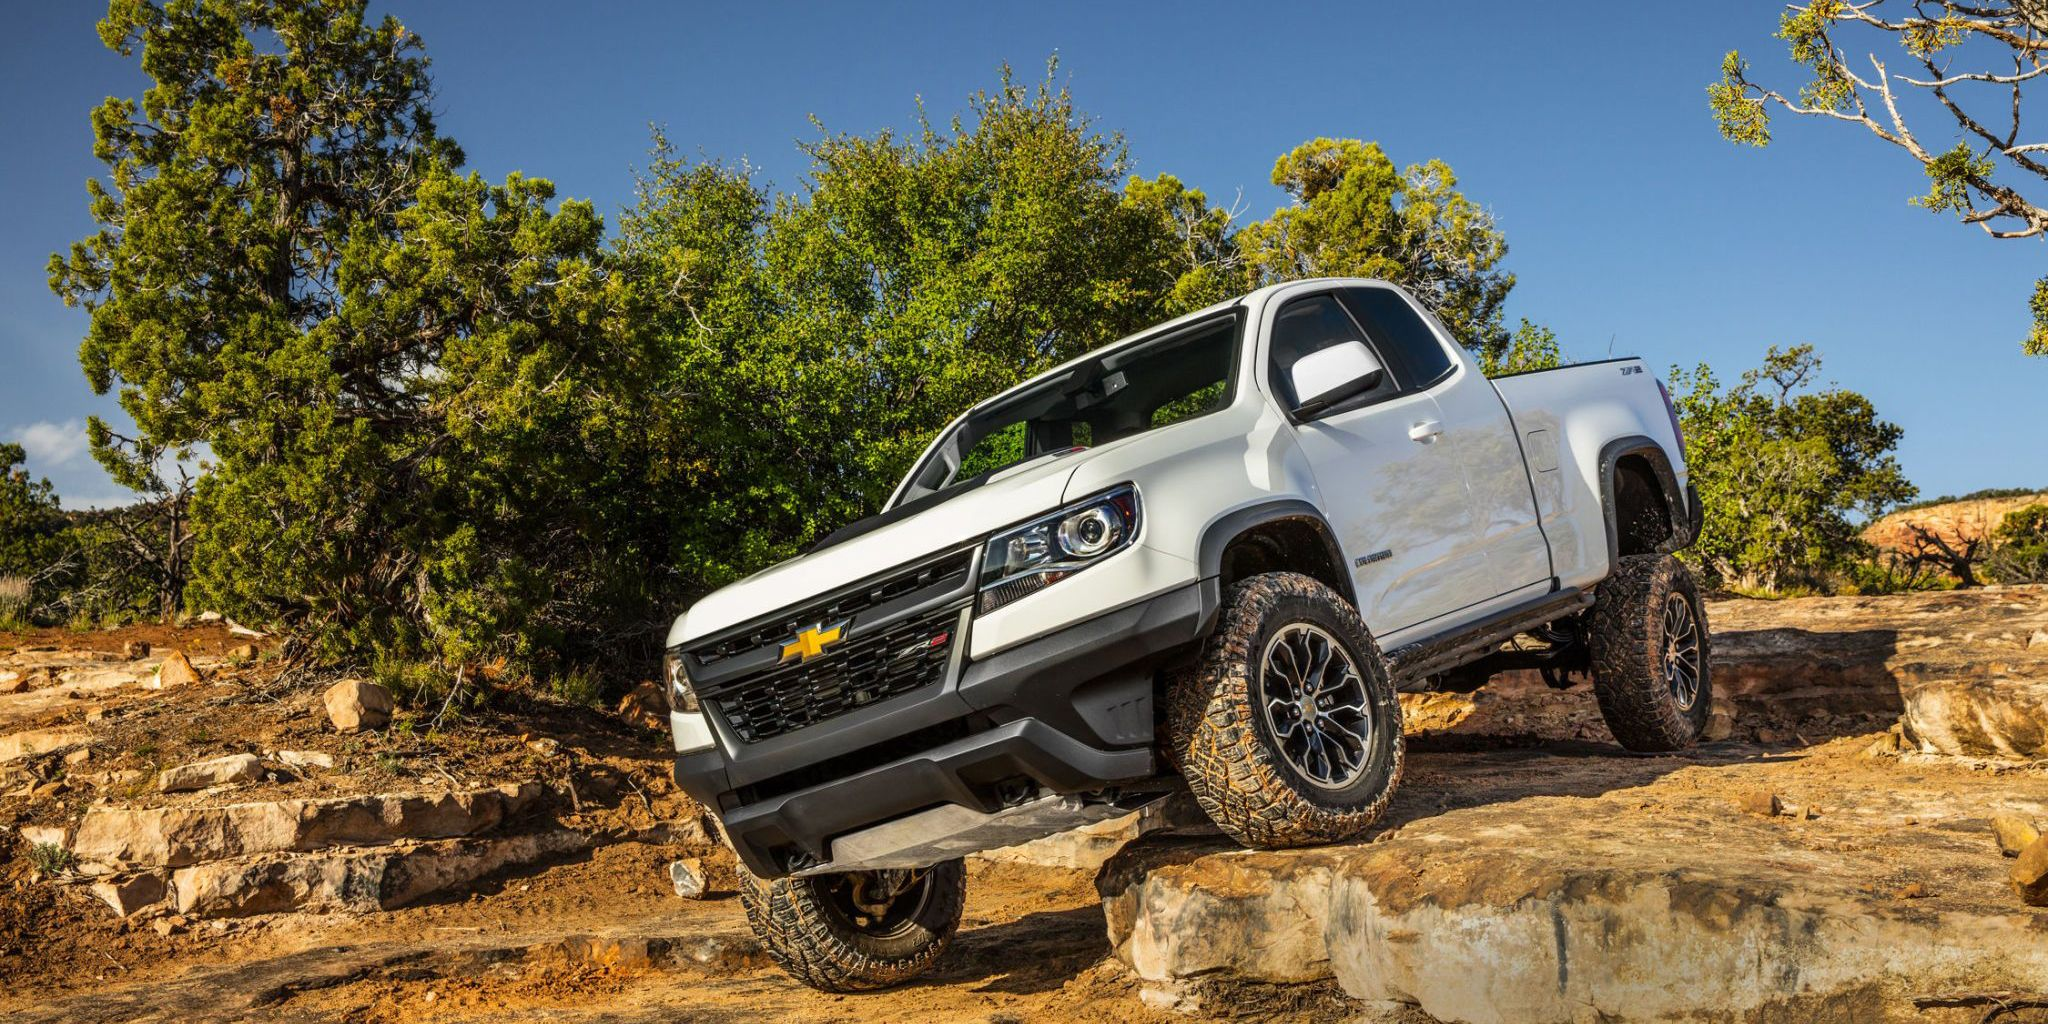 14 Best Off Road Vehicles In 2018 Top Off Road Cars